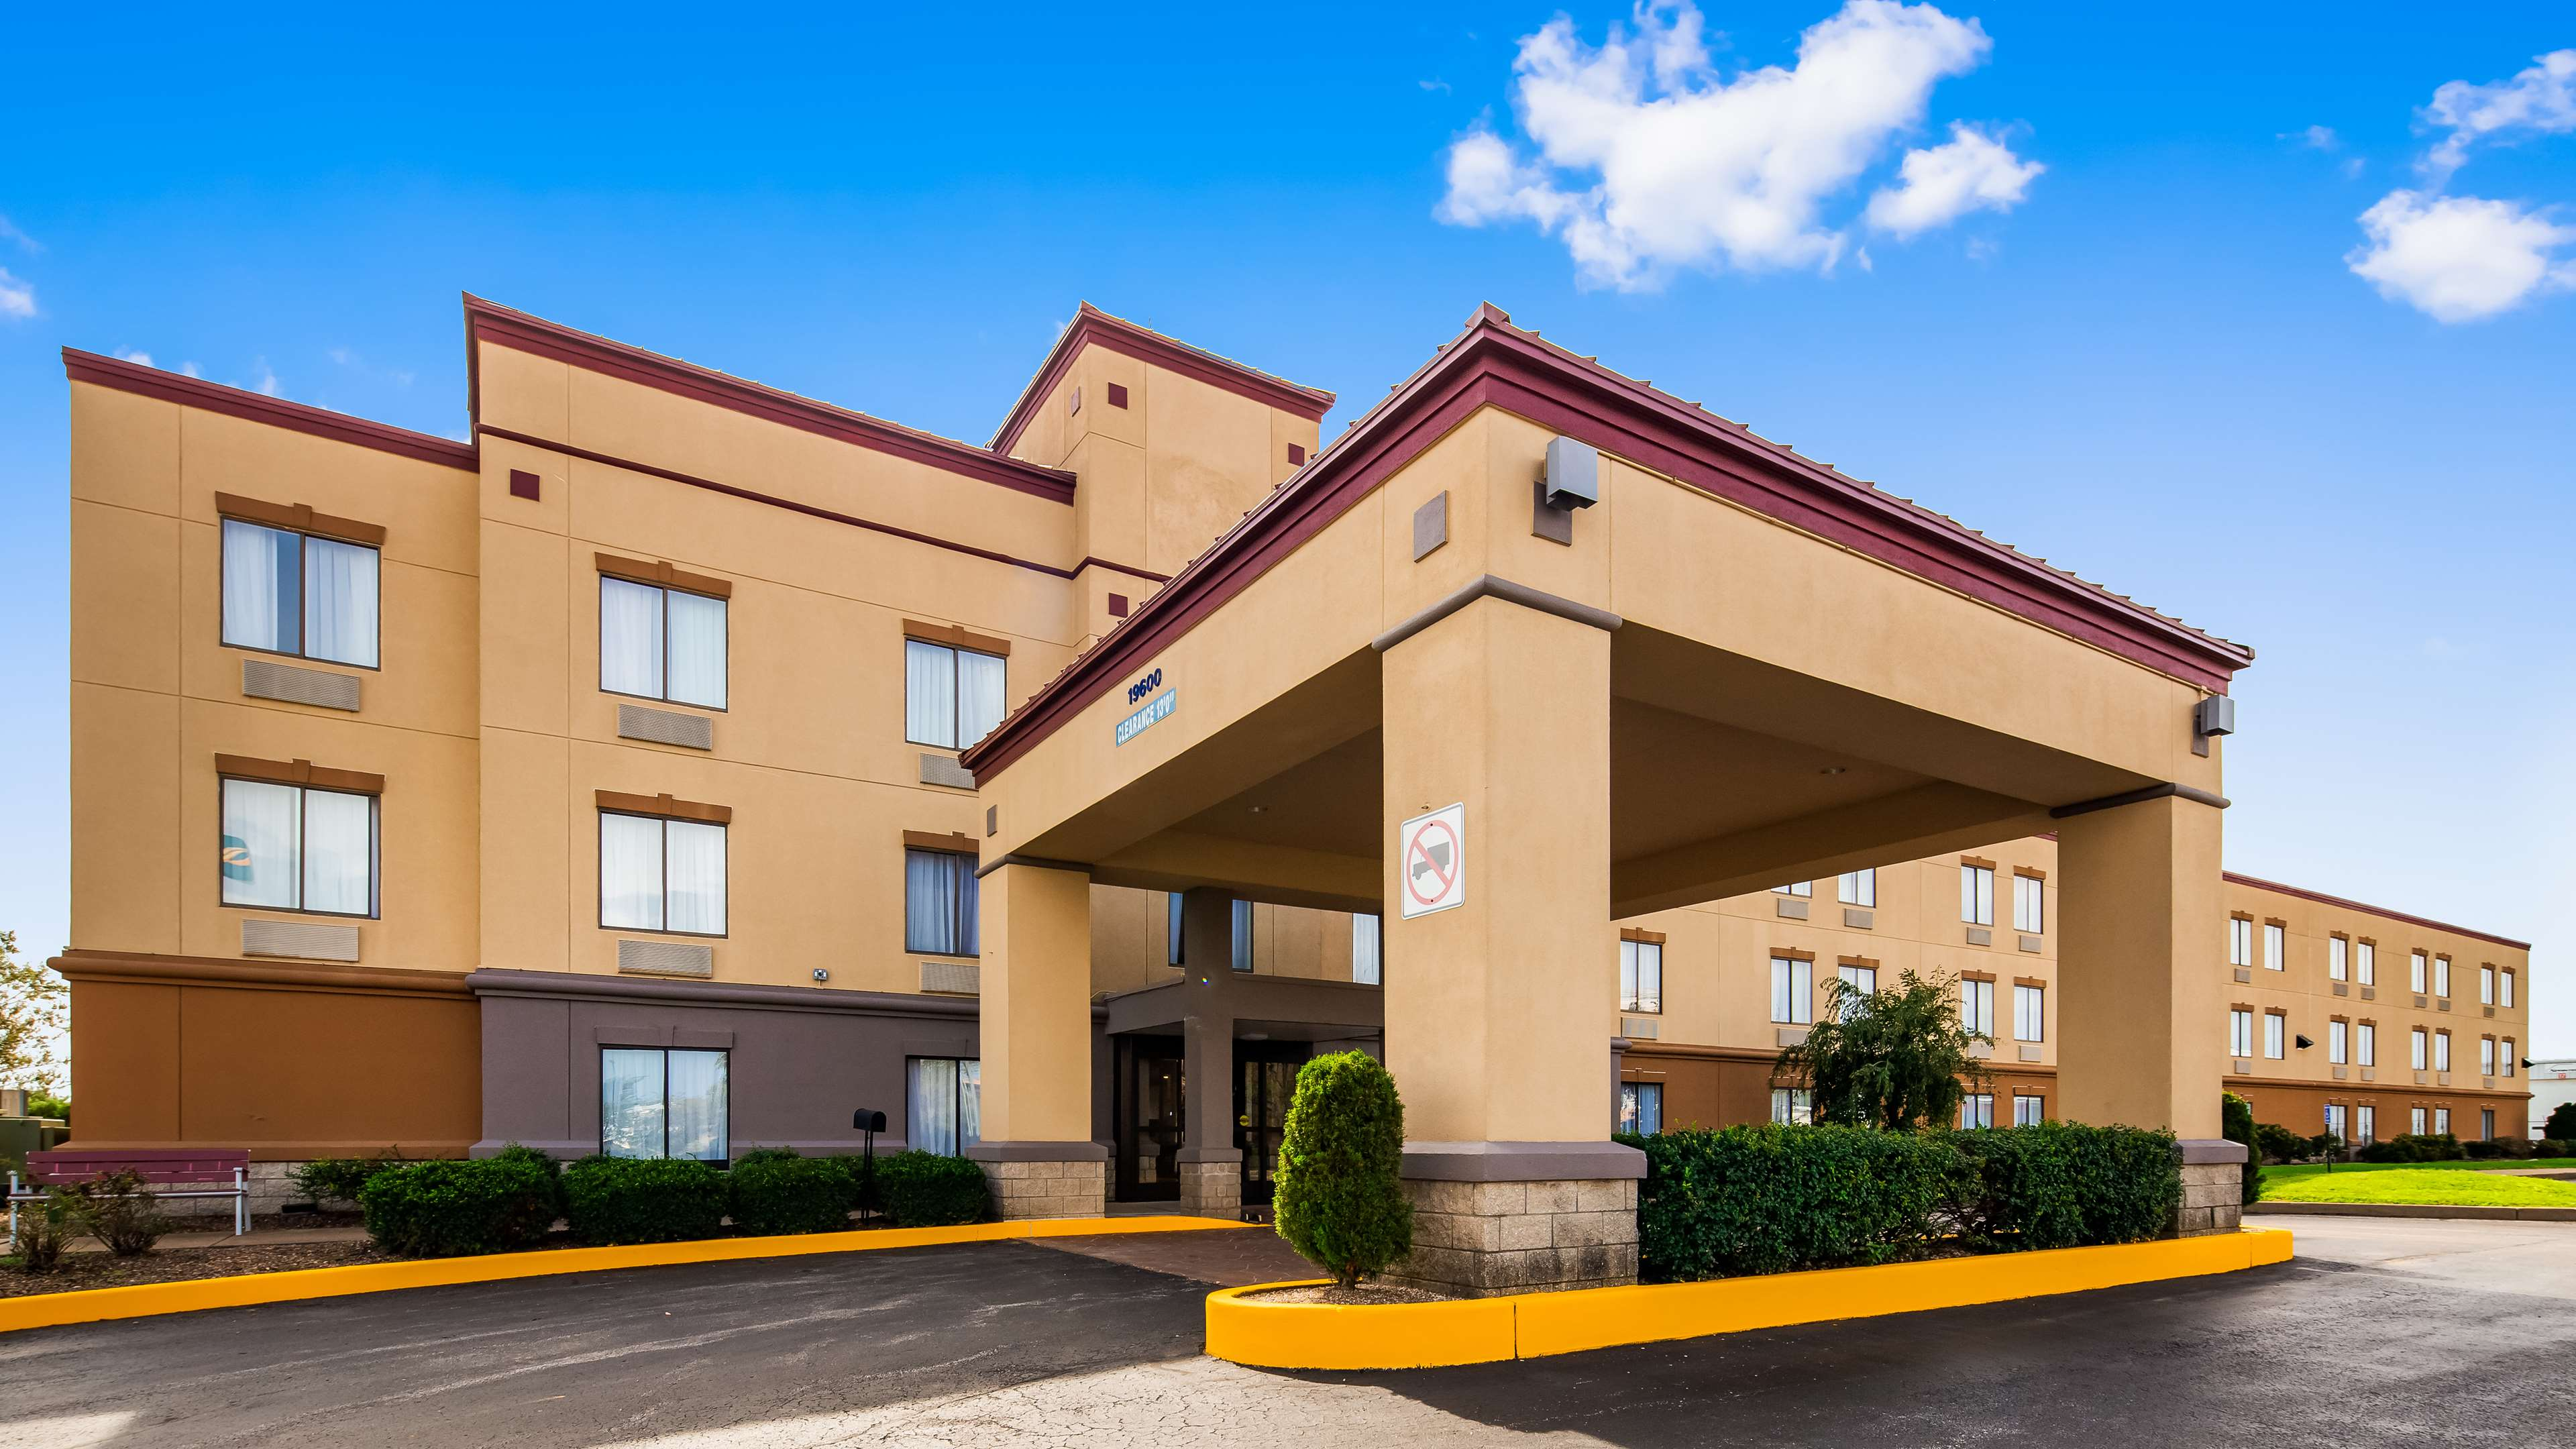 SureStay Plus Hotel by Best Western Evansville image 0